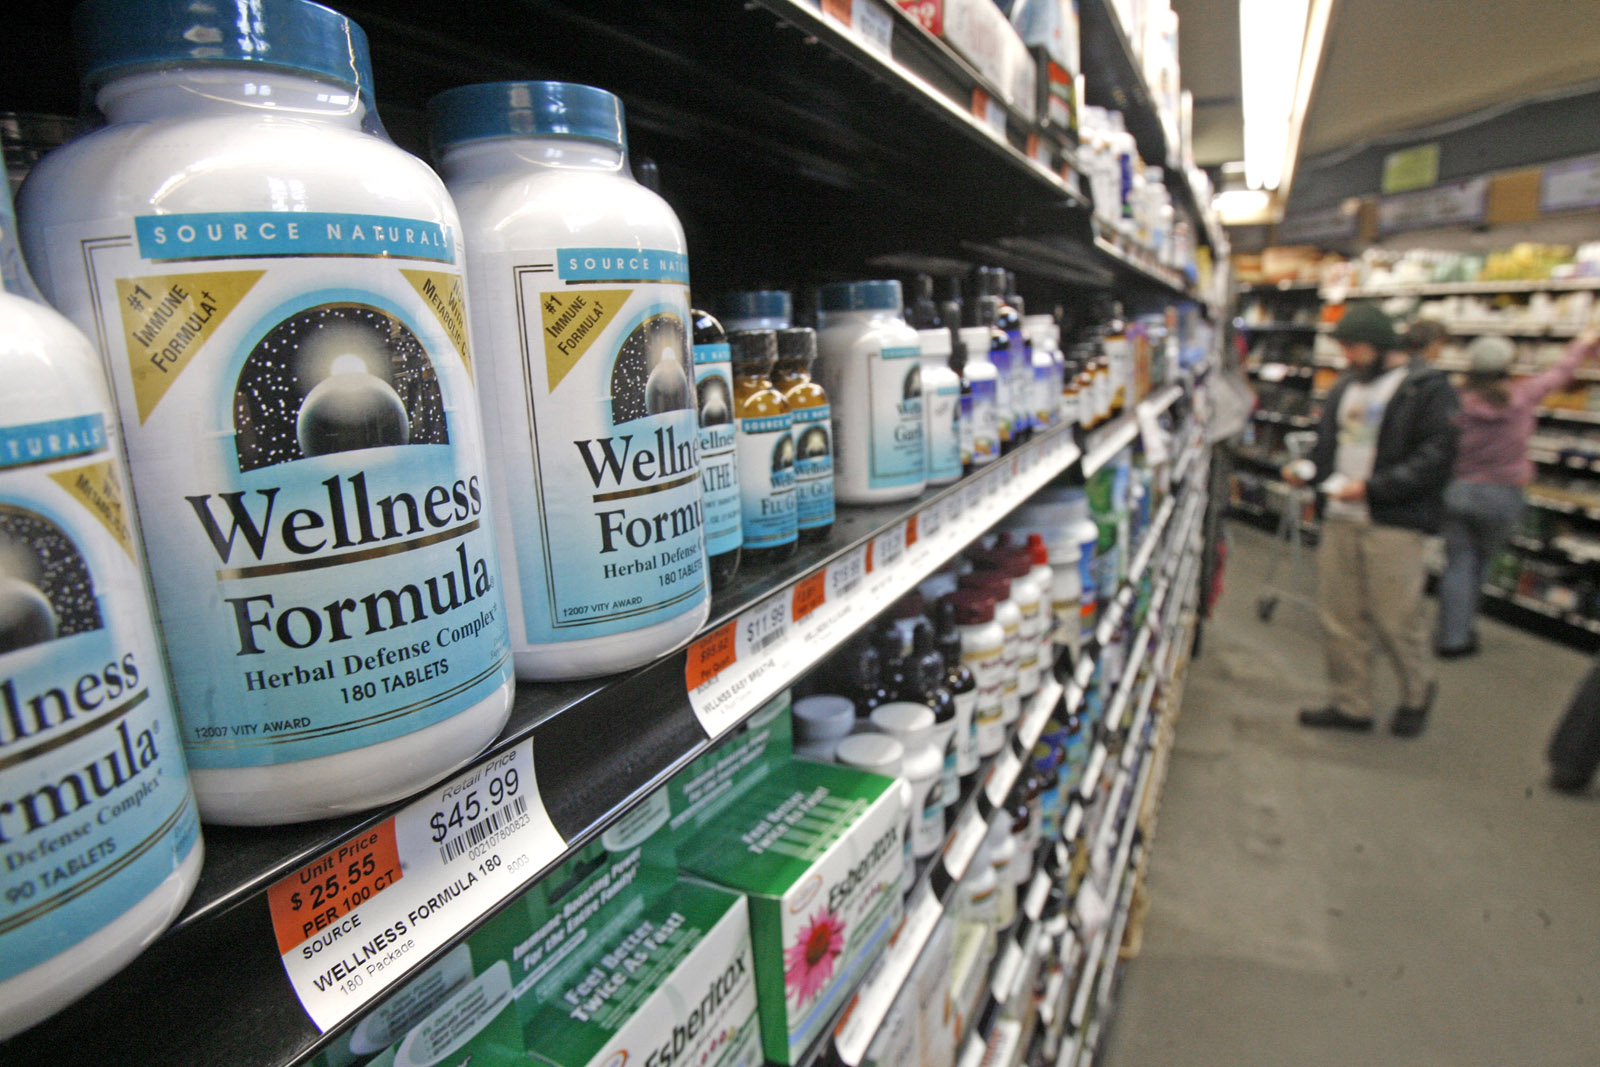 Doctors: Some supplements can undermine medical treatments